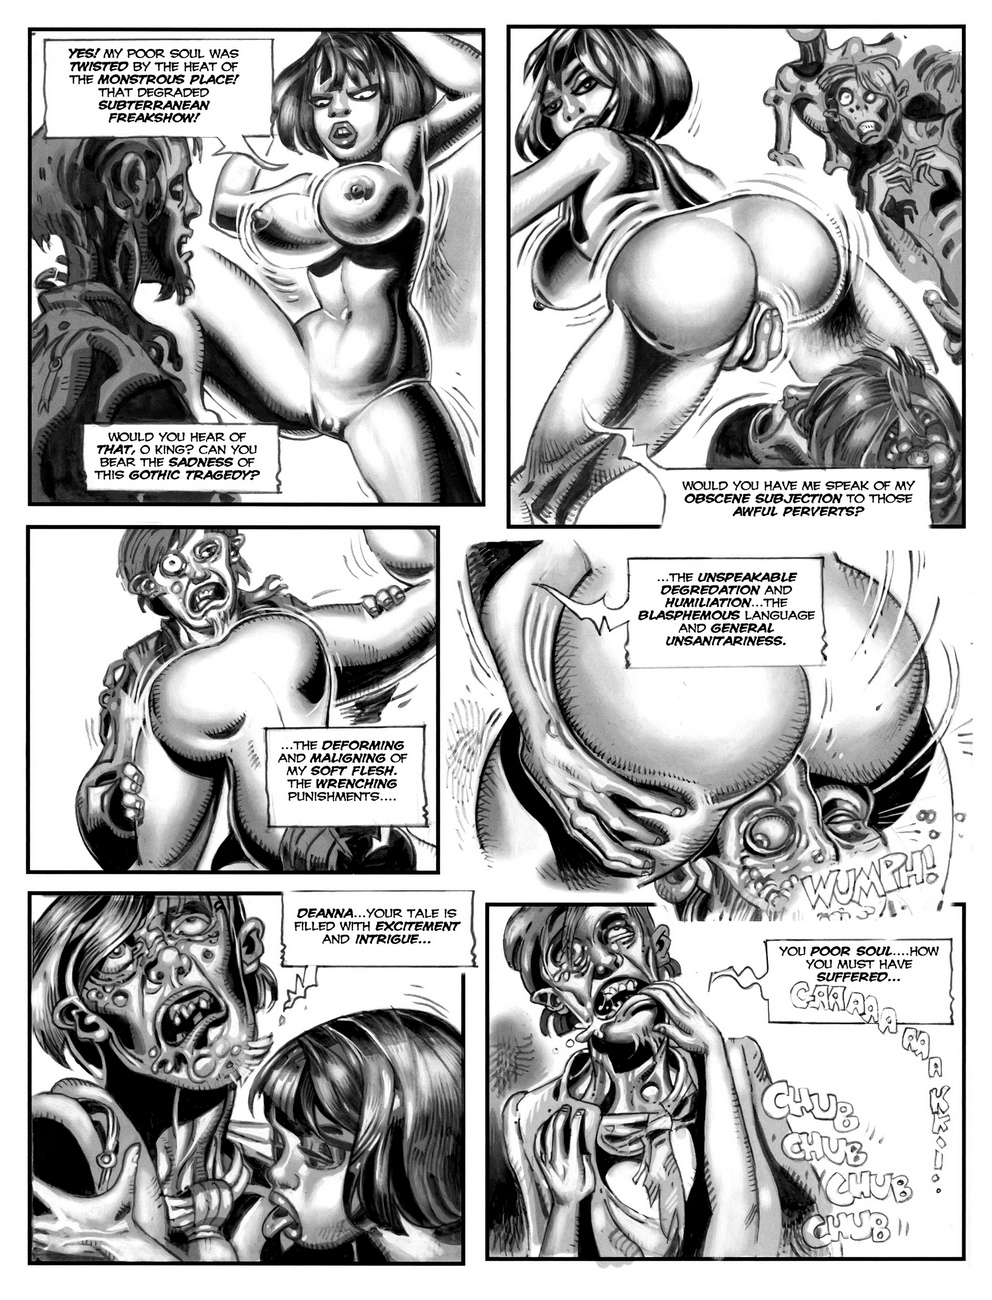 Deanna-Of-The-Dead-Night-Two 6 free sex comic